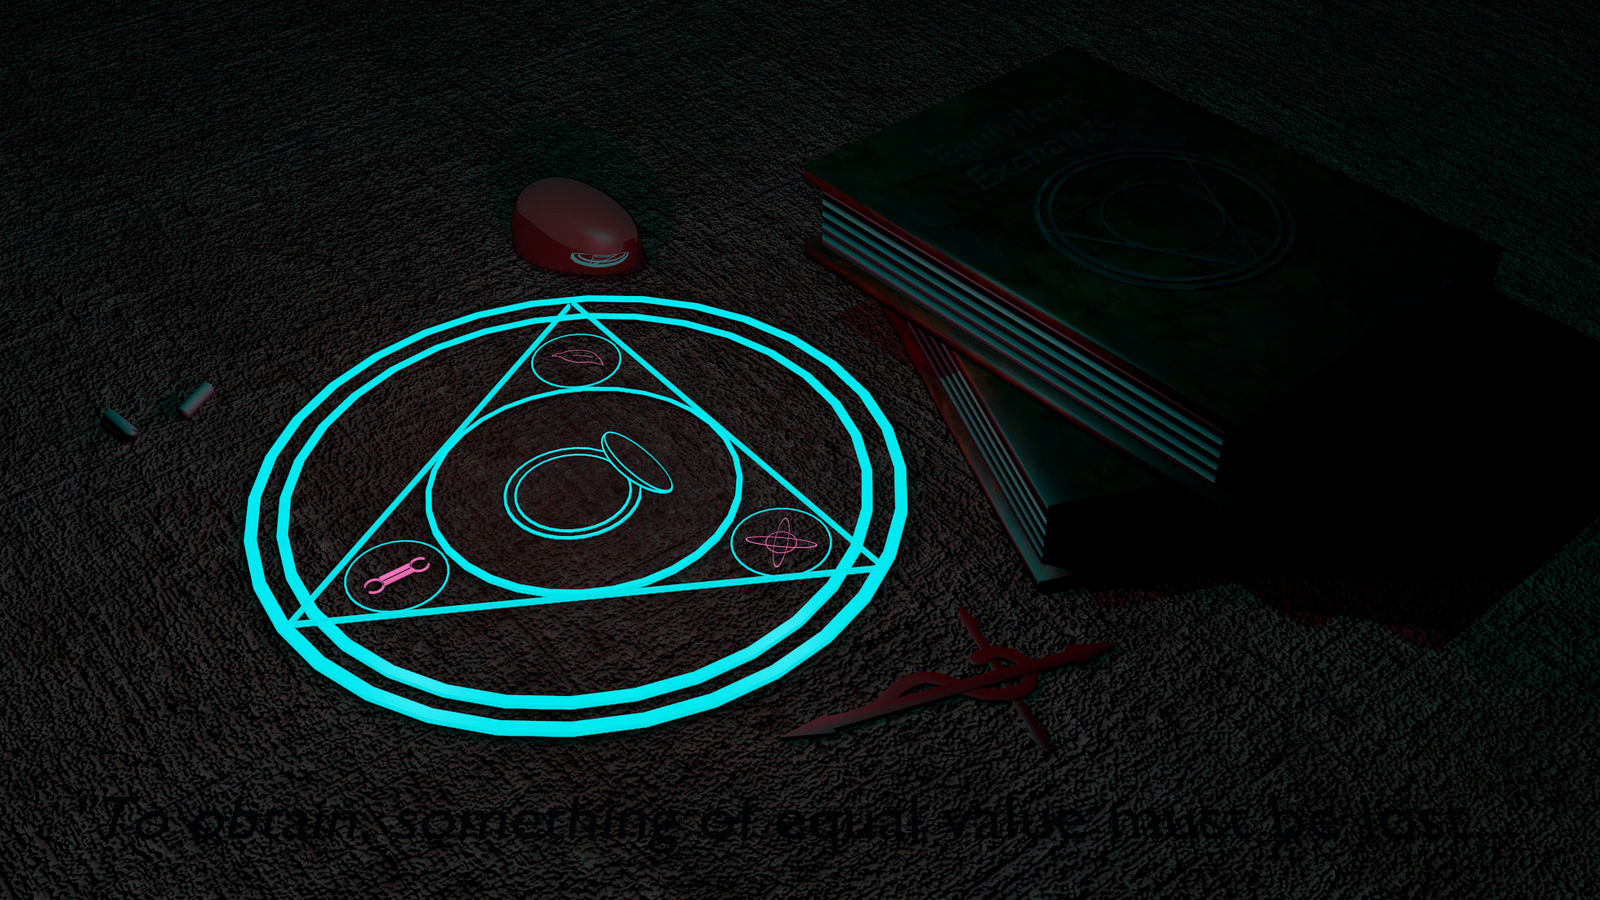 Fullmetal Alchemist Transmutation Circle By Ledironrage On Deviantart